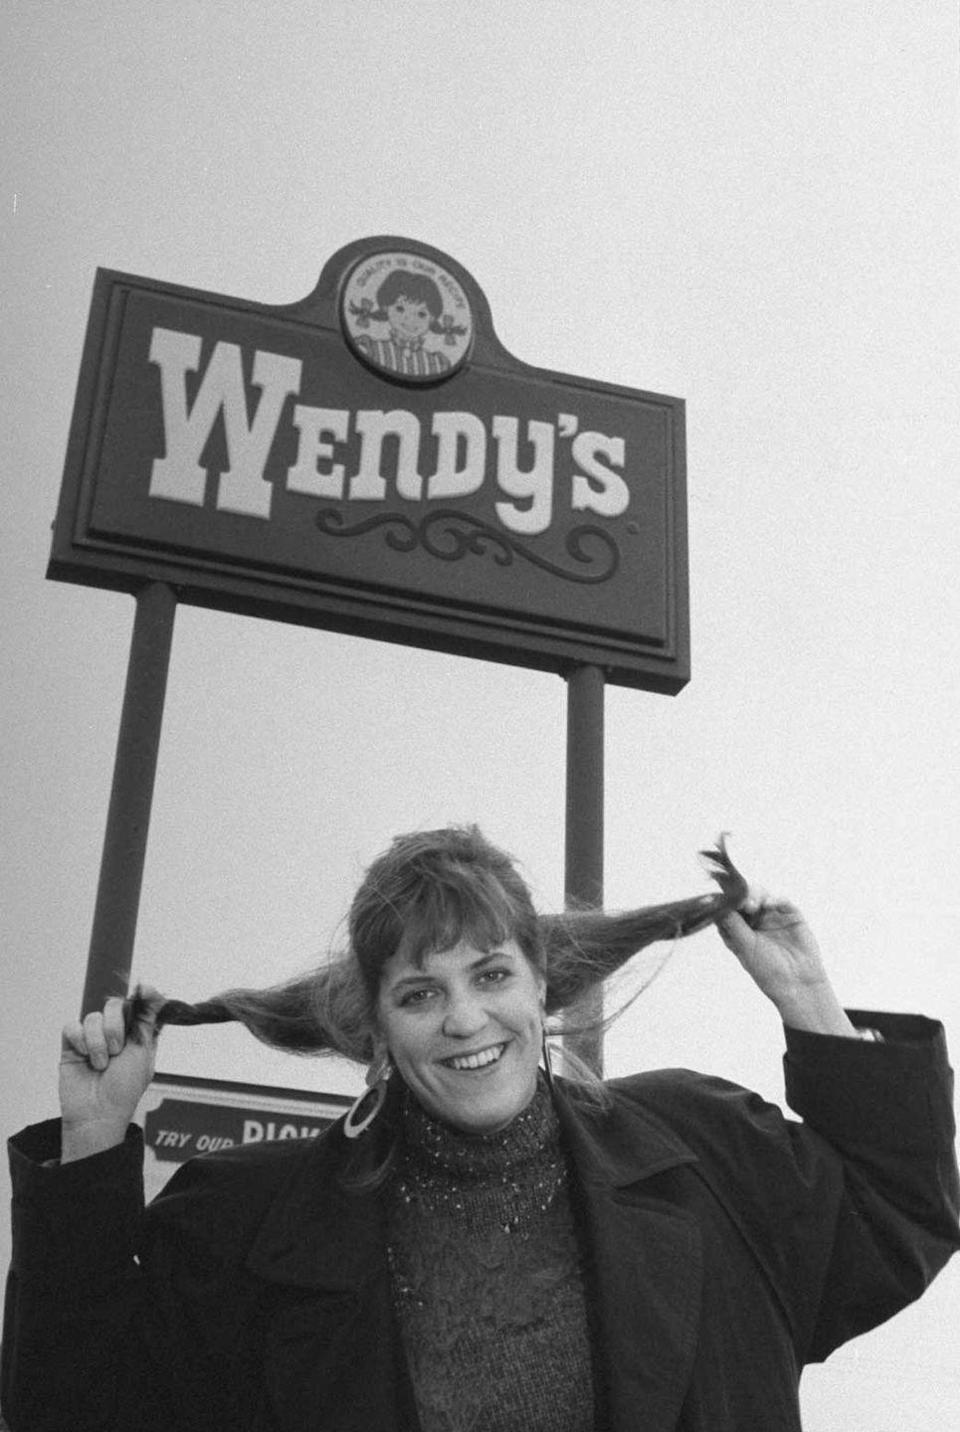 <p>You may recognize Wendy Morse because she is <em>the</em> Wendy, even depicted in the chain's illustrative logo. Daughter of Founder Dave Thomas, she's seen here posing in front of the sign in 1989.</p>